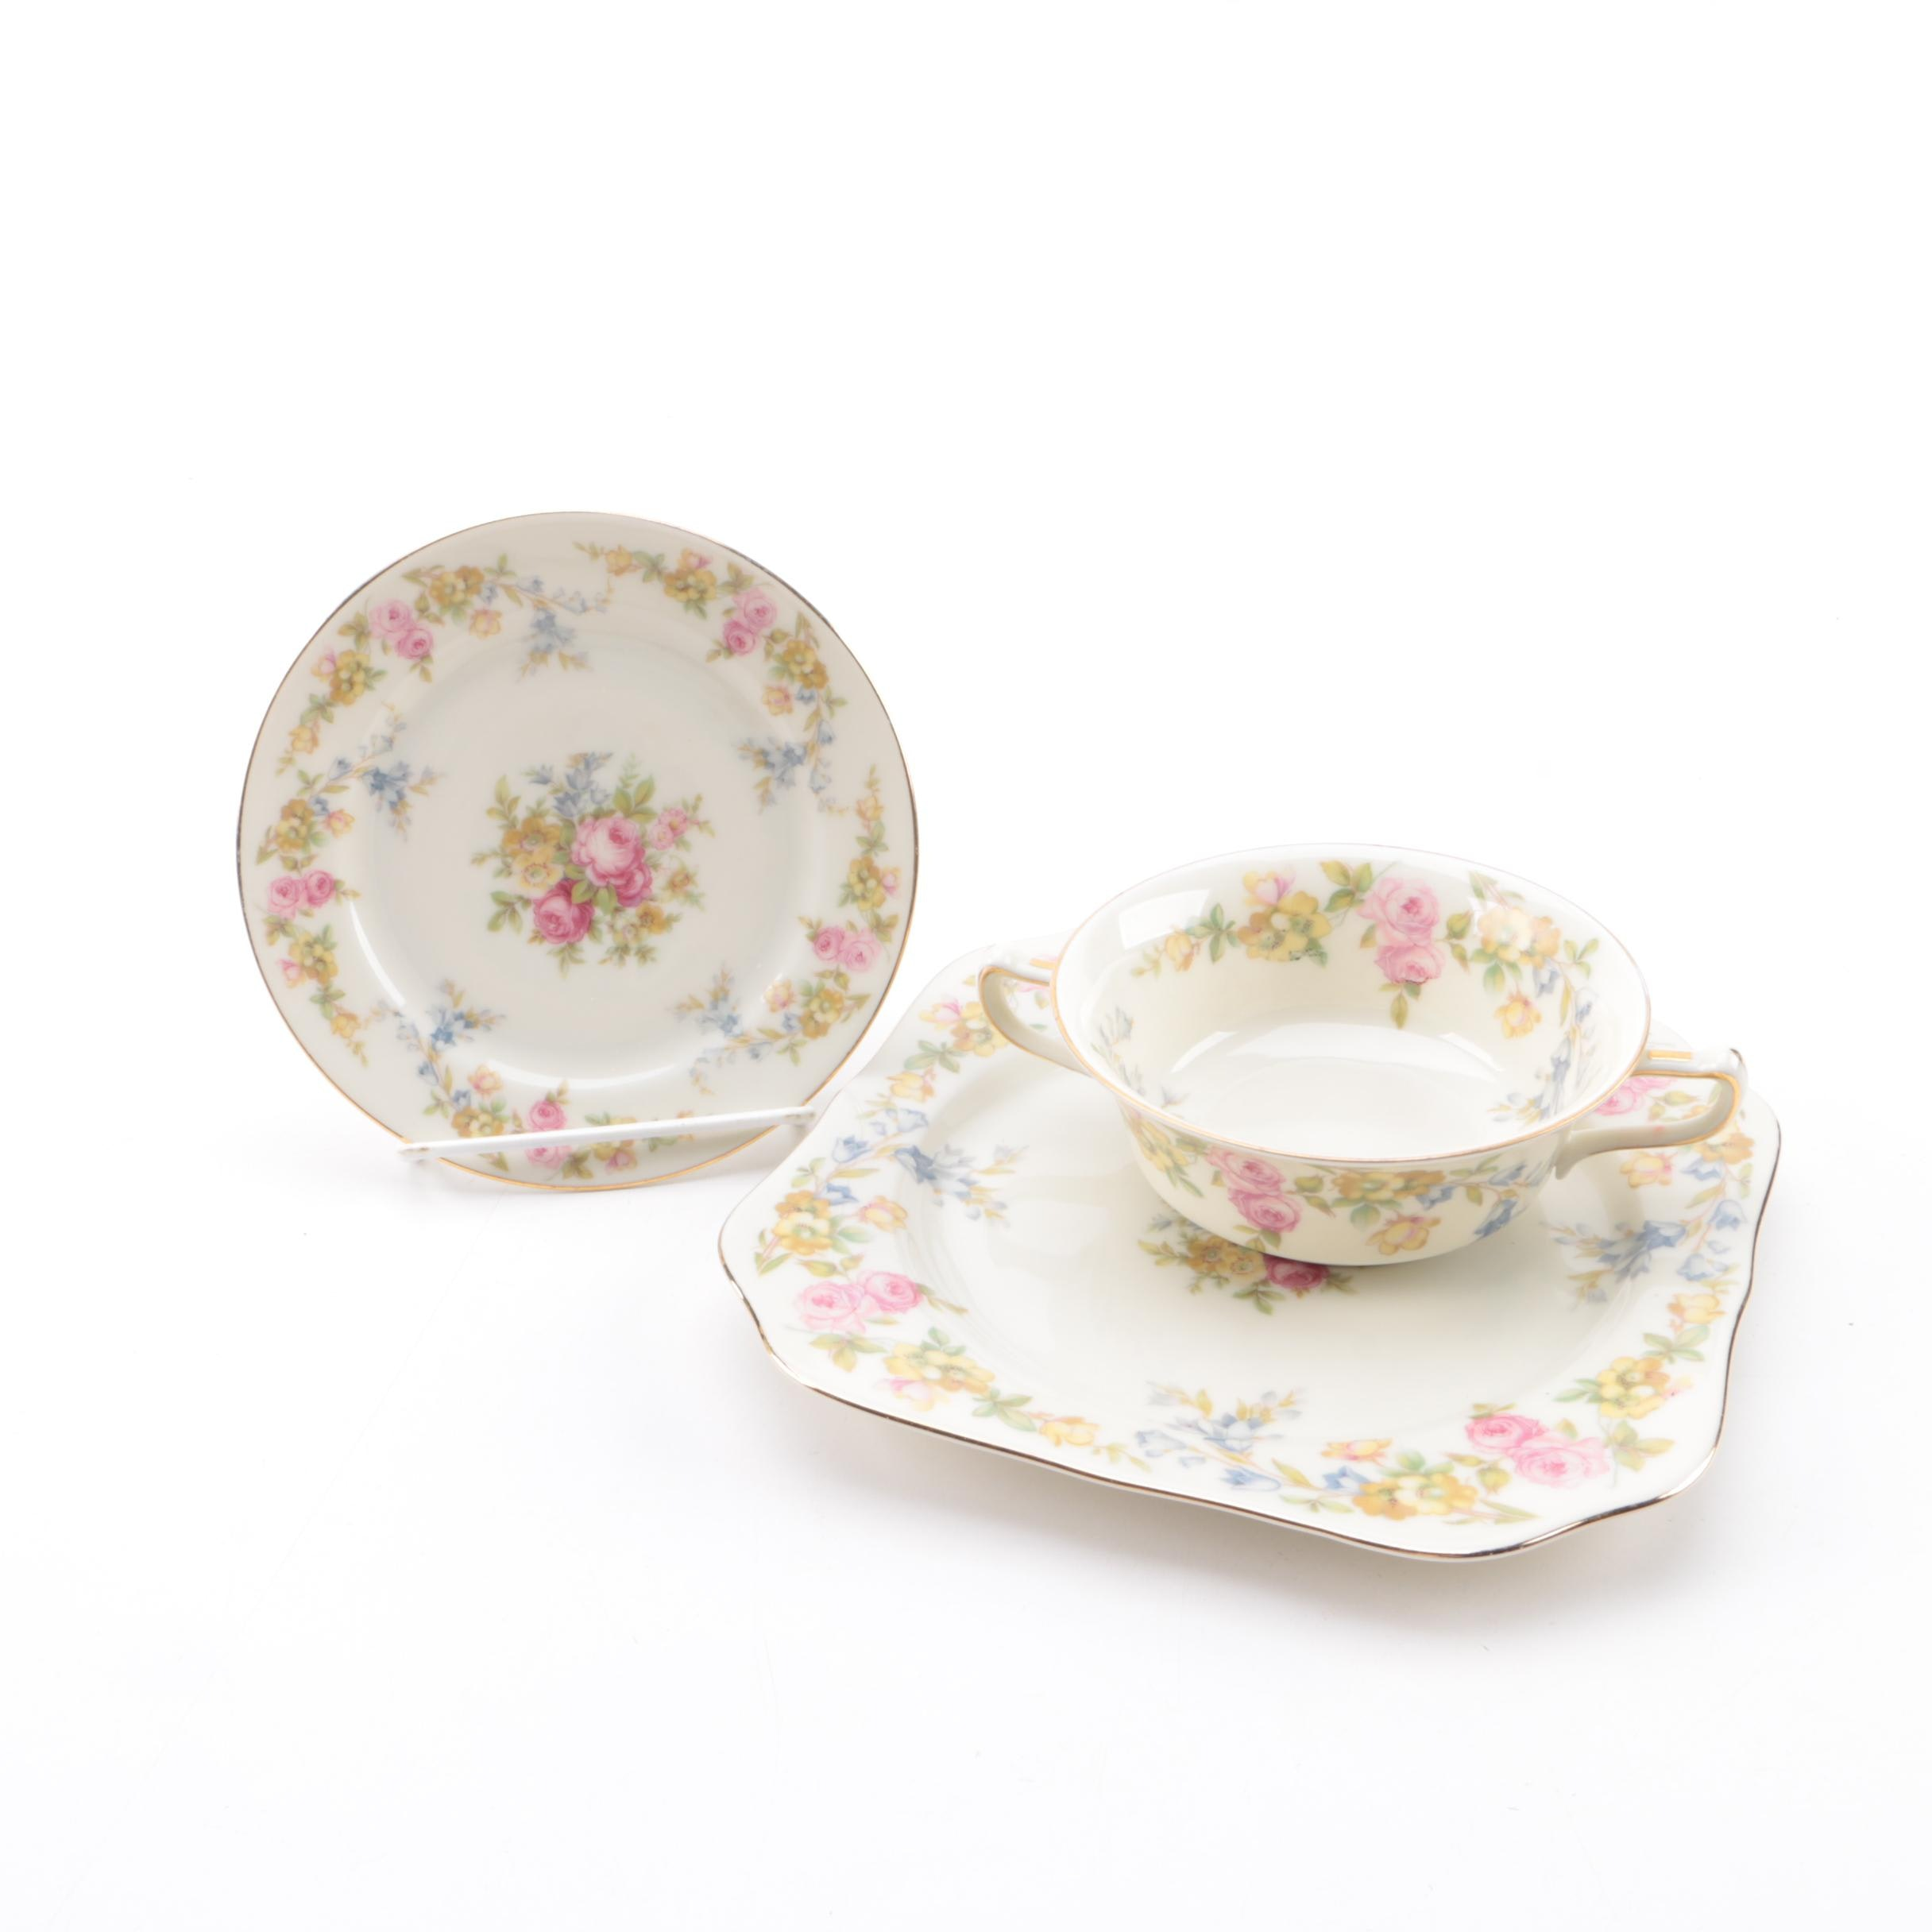 """KPM Royal Ivory """"Riviera"""" Double Handle Cream Soup Bowl, Saucer, and Salad Plate"""